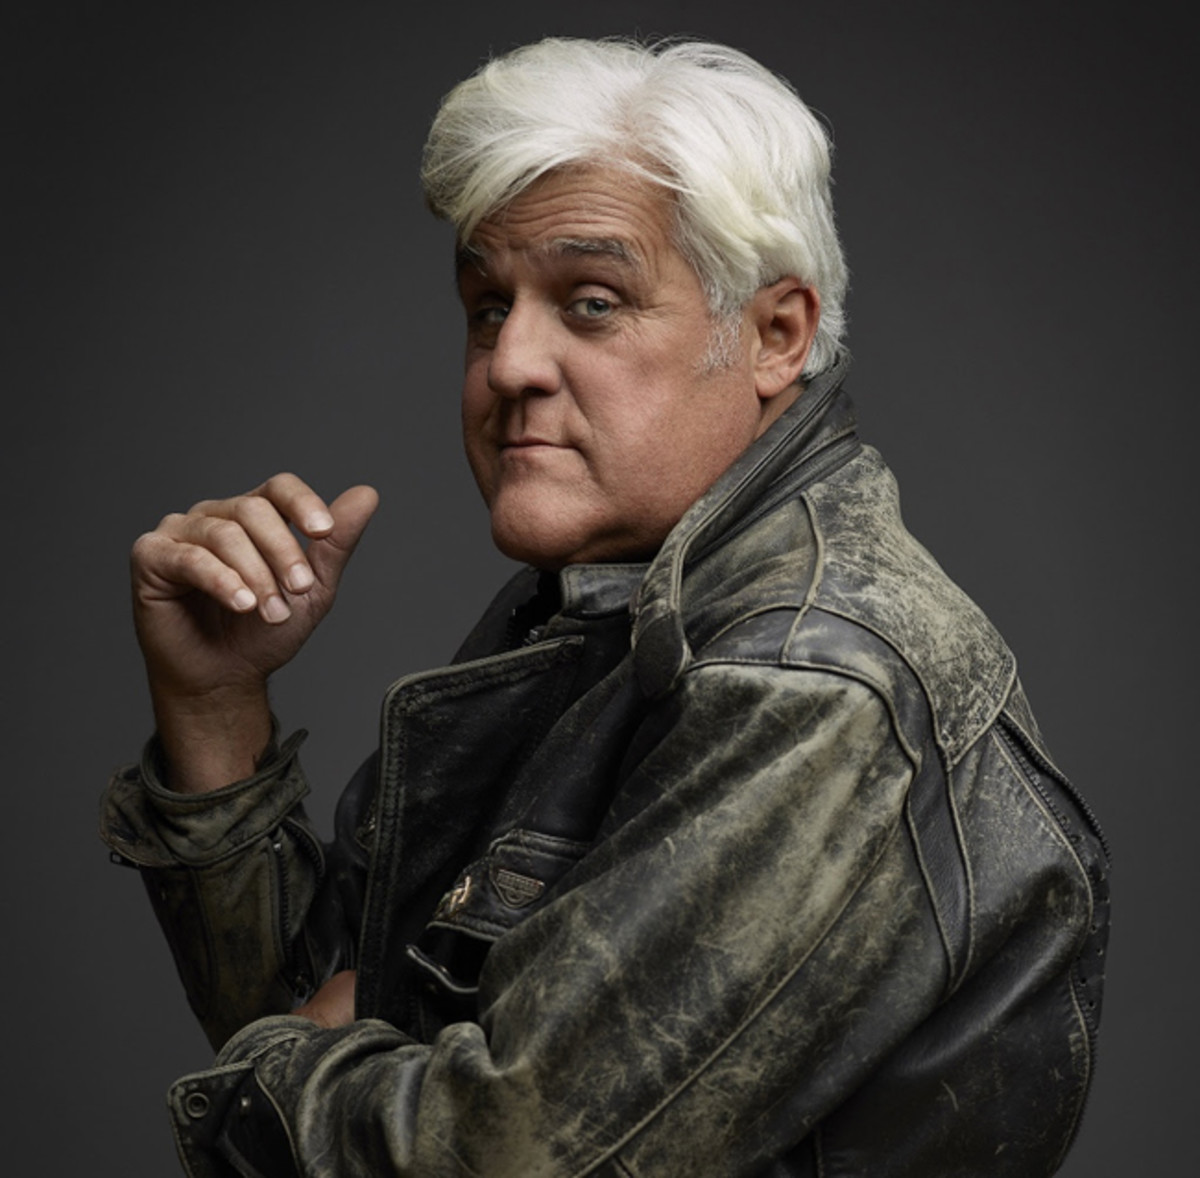 Jay Leno will lead an extensive list of automotive celebrities at the 2018 Classic Auto Show at the Los Angeles Convention Center on March 2-4, 2018